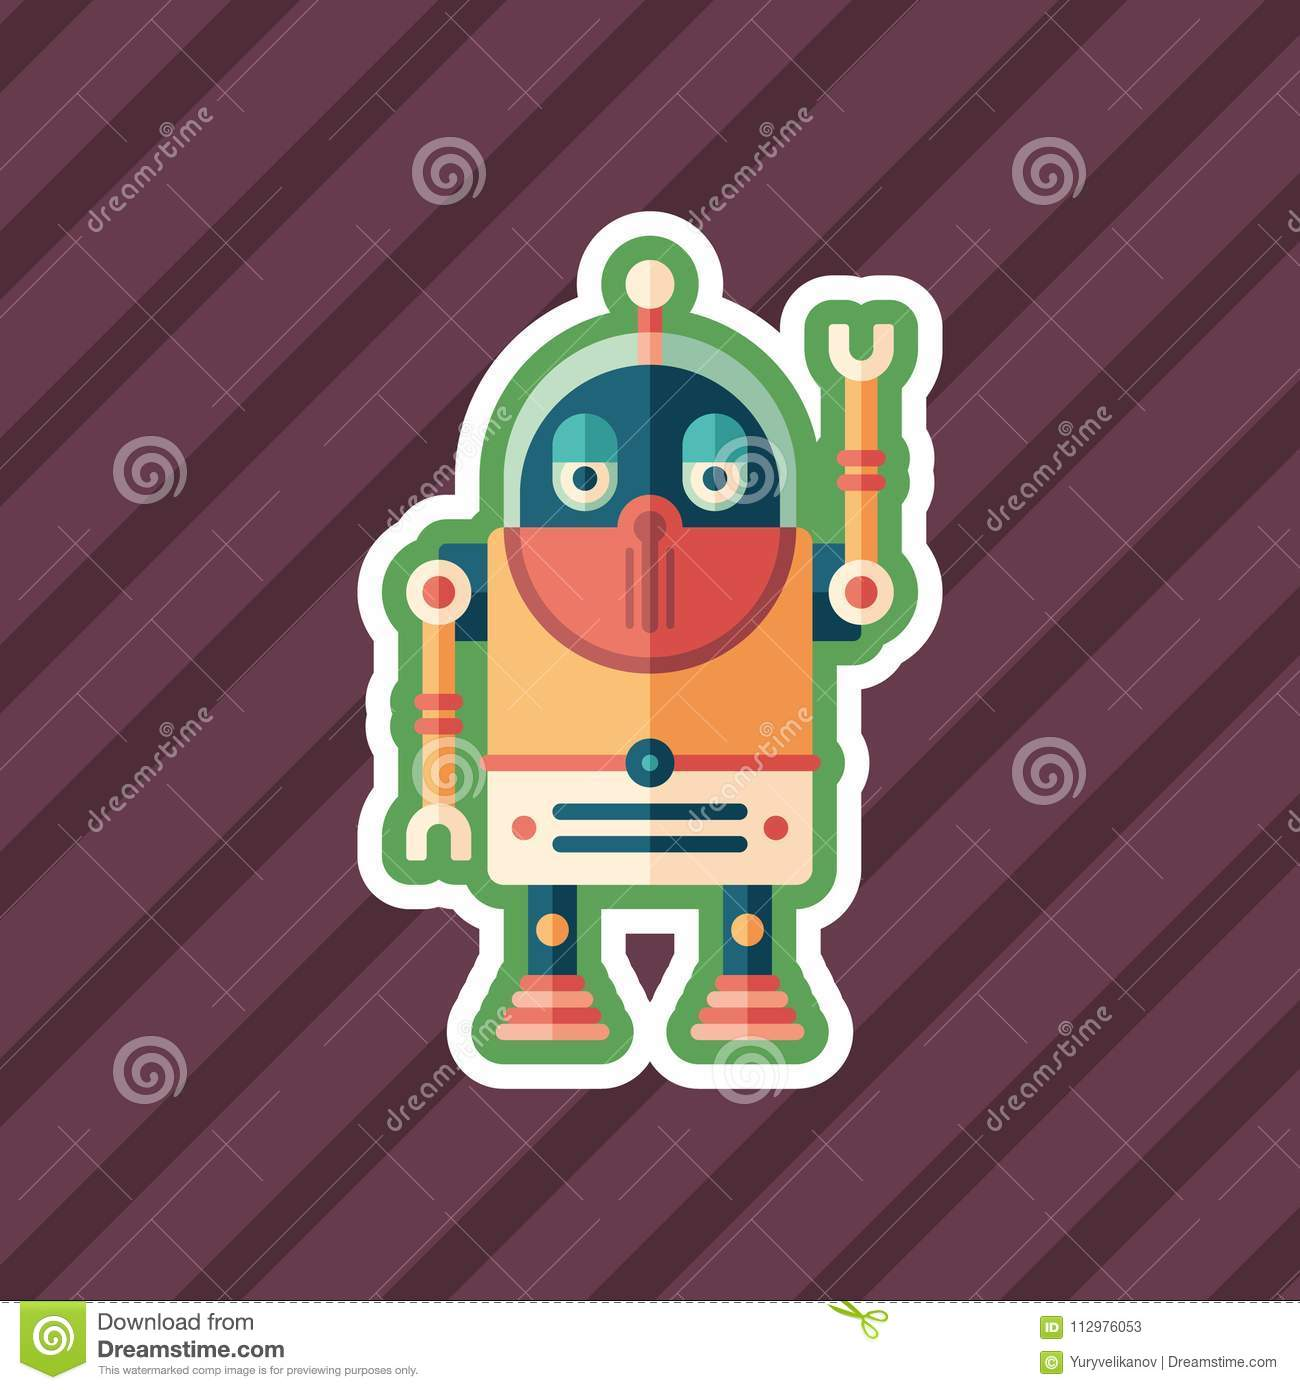 Robot tourist sticker flat icon with color background.